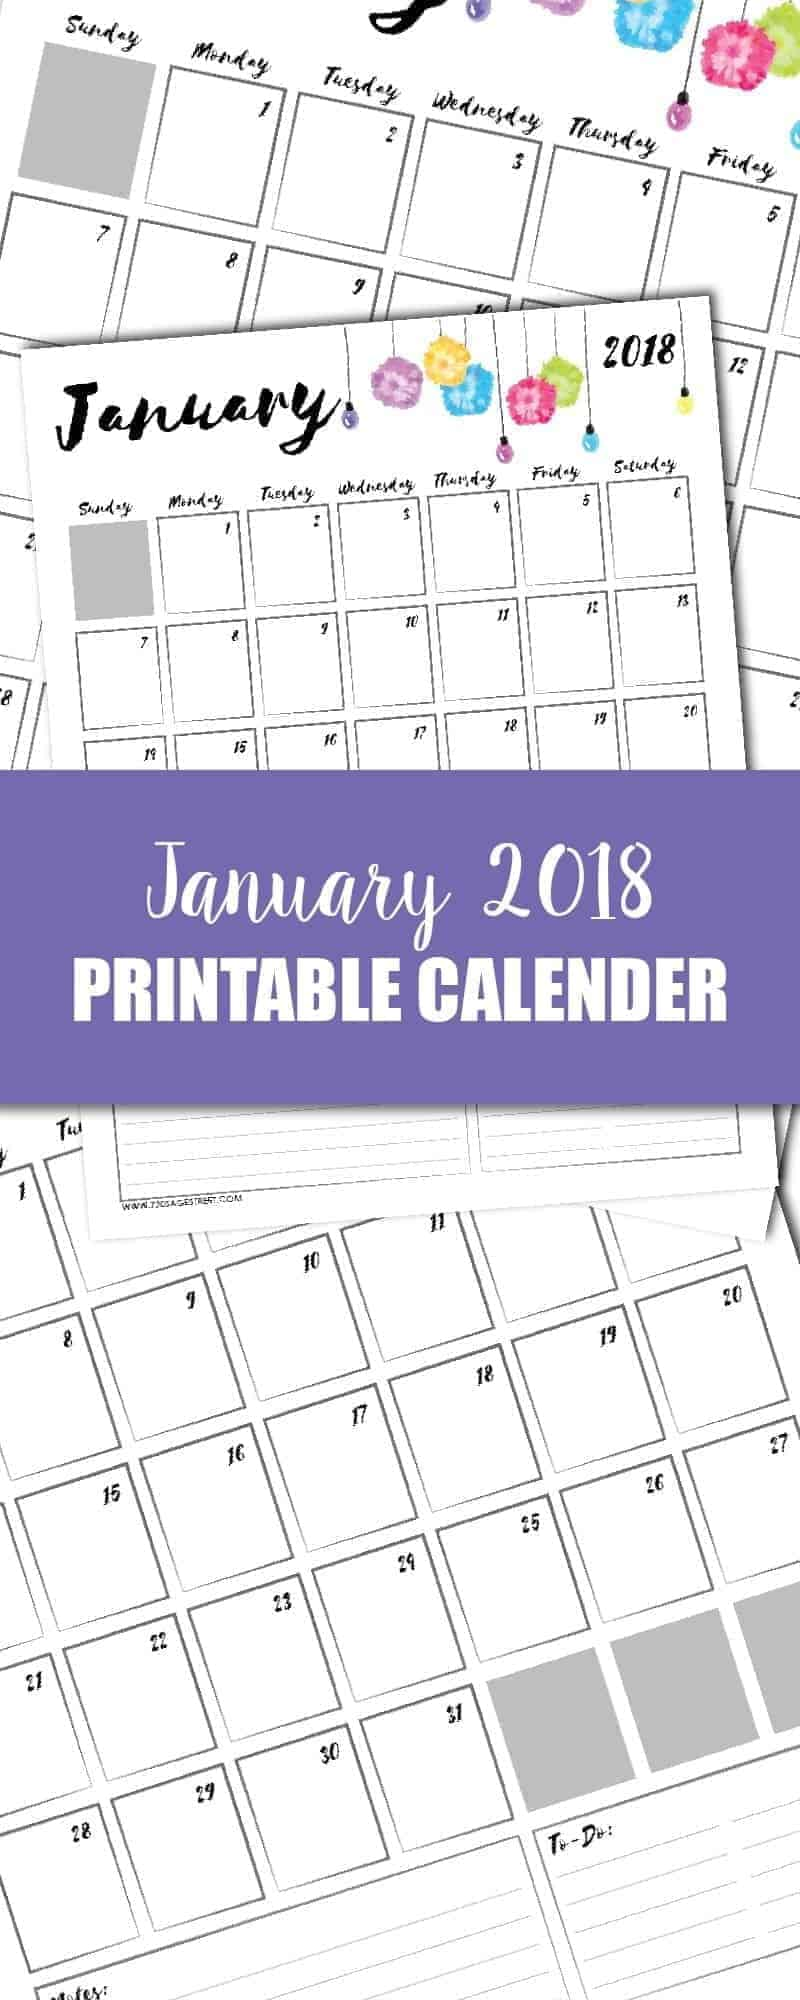 tall graphic showing a January 2018 printable calendar